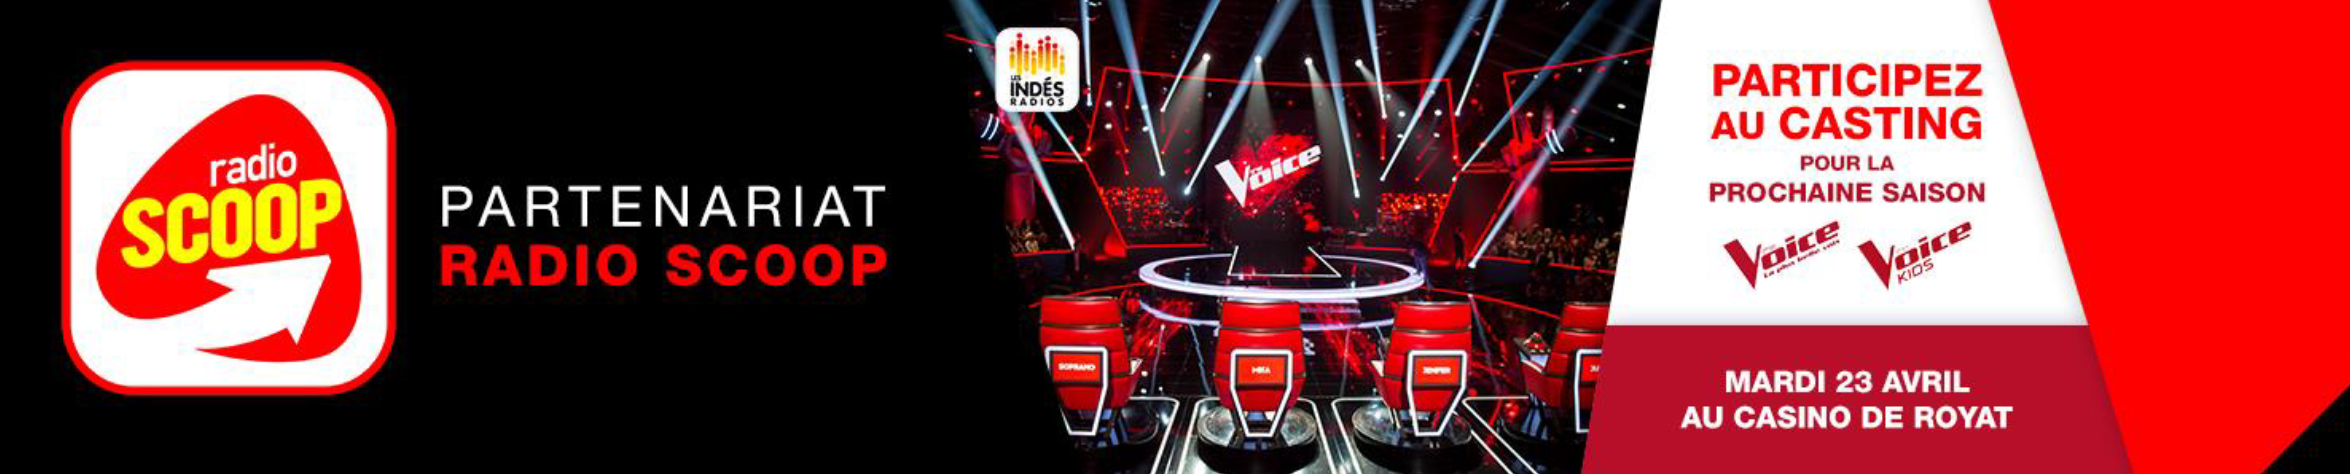 Radio Scoop au casting de The Voice à Clermont-Ferrand